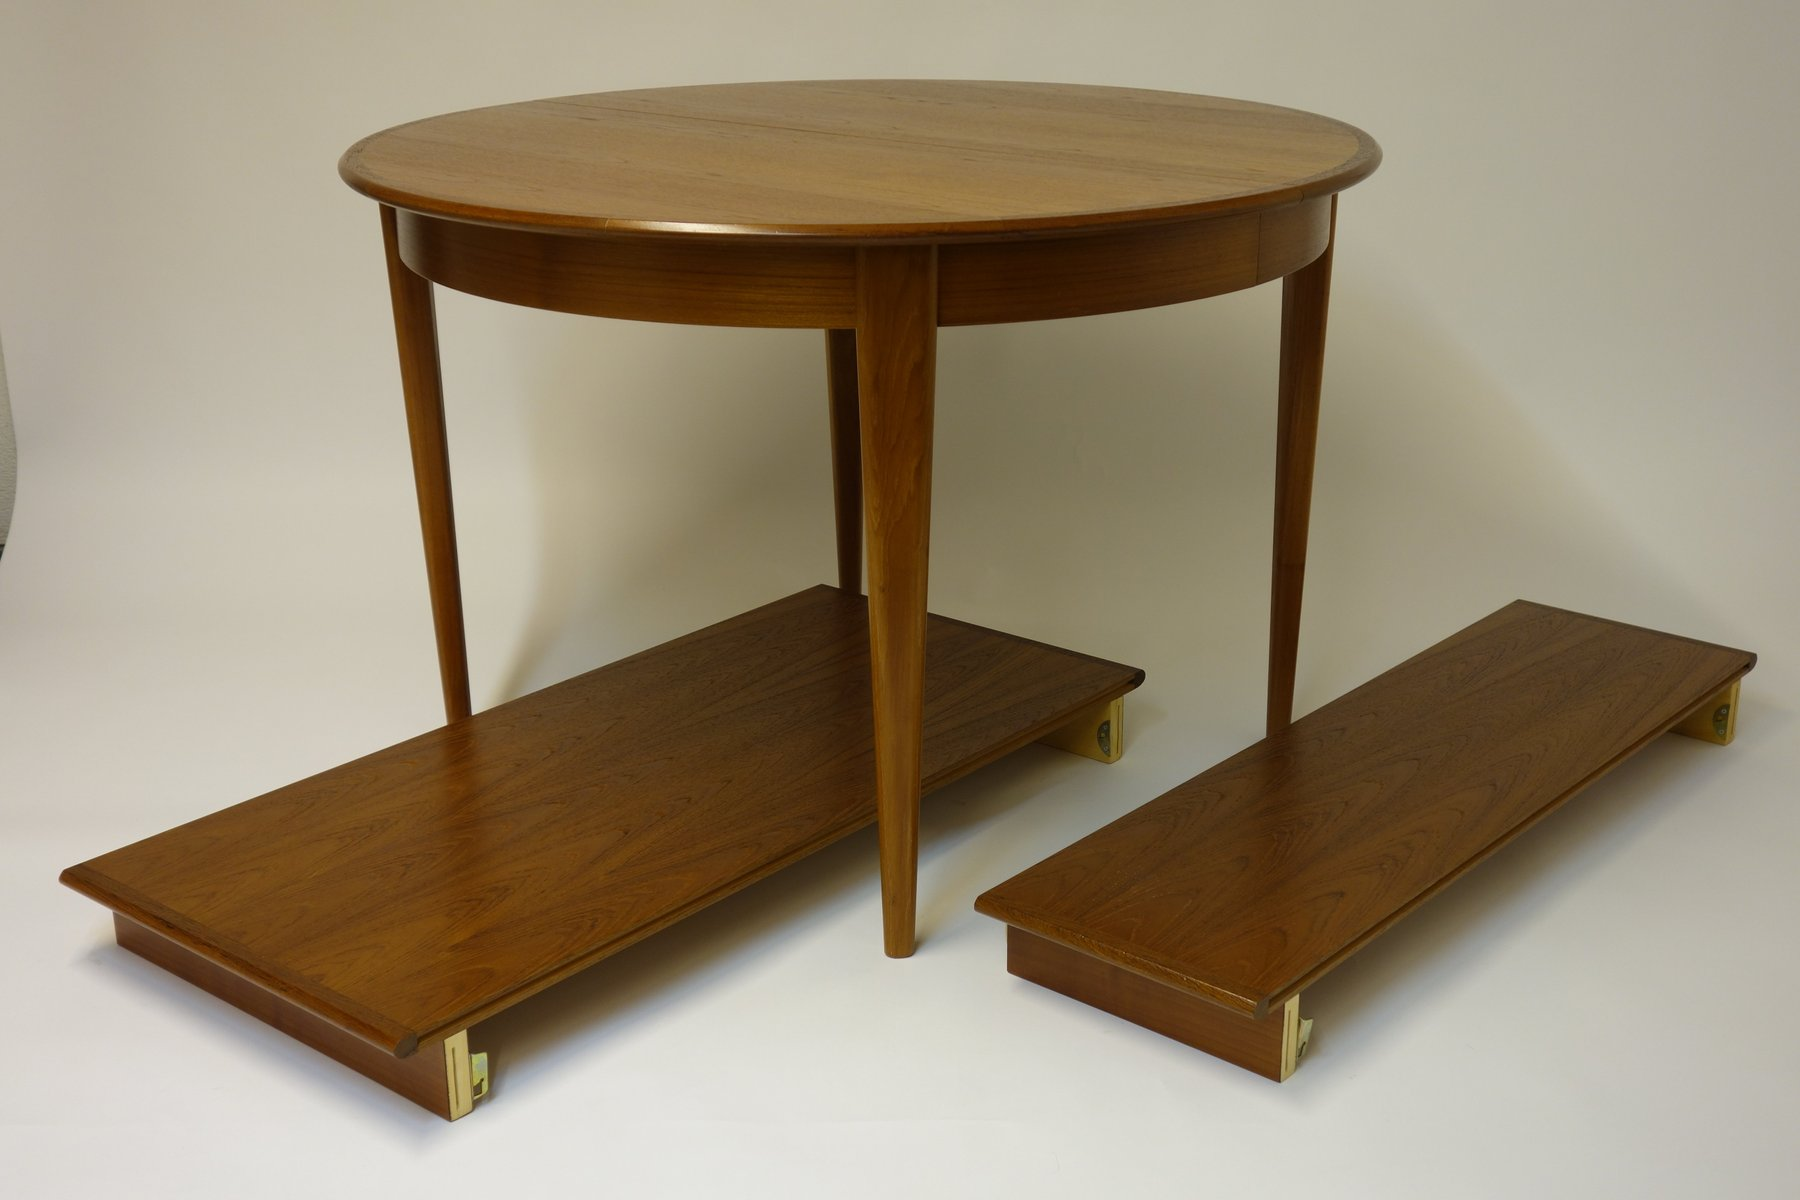 Dining Table With Two Extensions Four Chairs From Brdr Andersen 1966